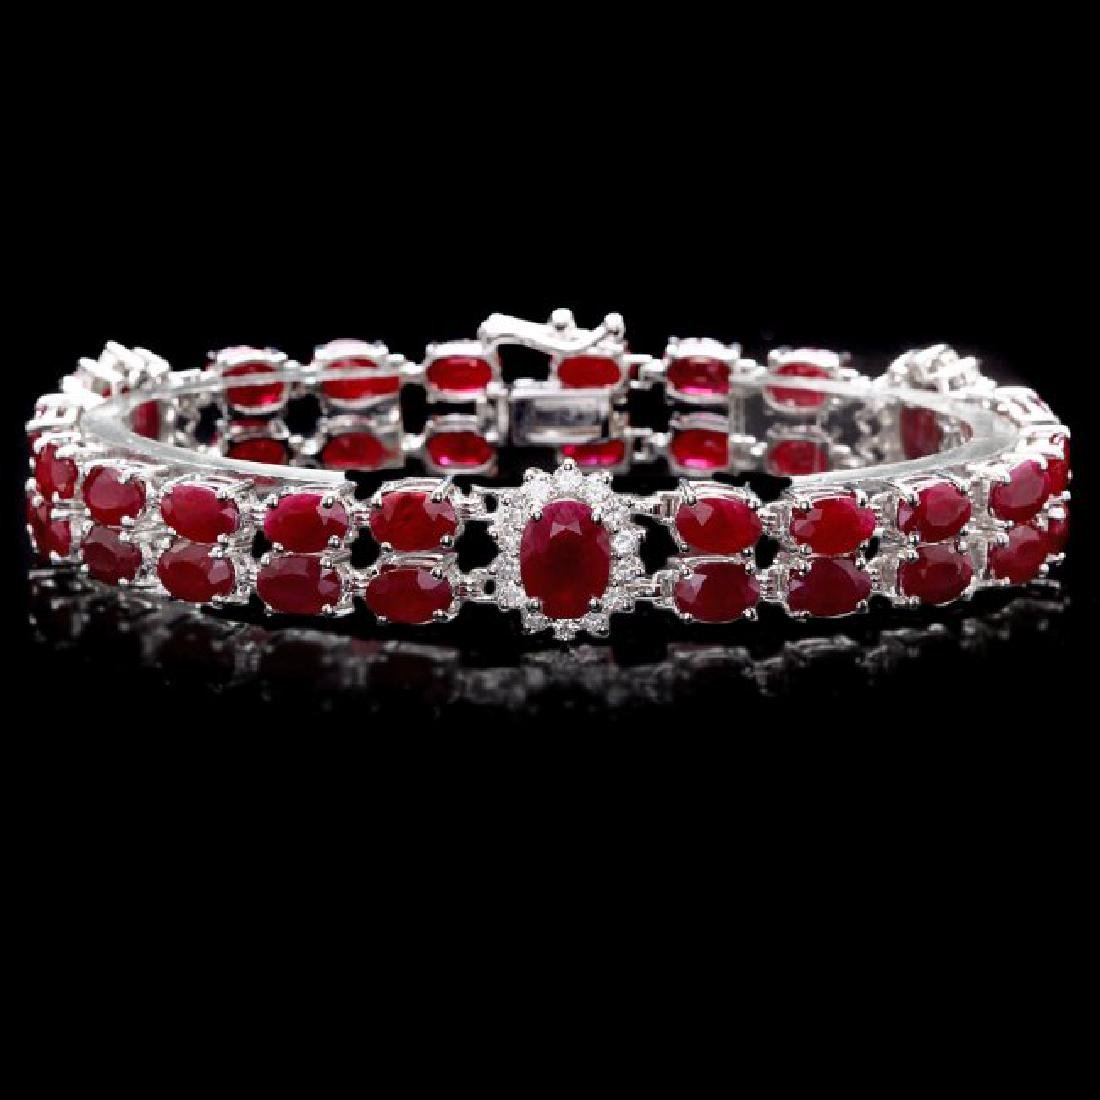 14k White Gold 22ct Ruby 1.30ct Diamond Bracelet